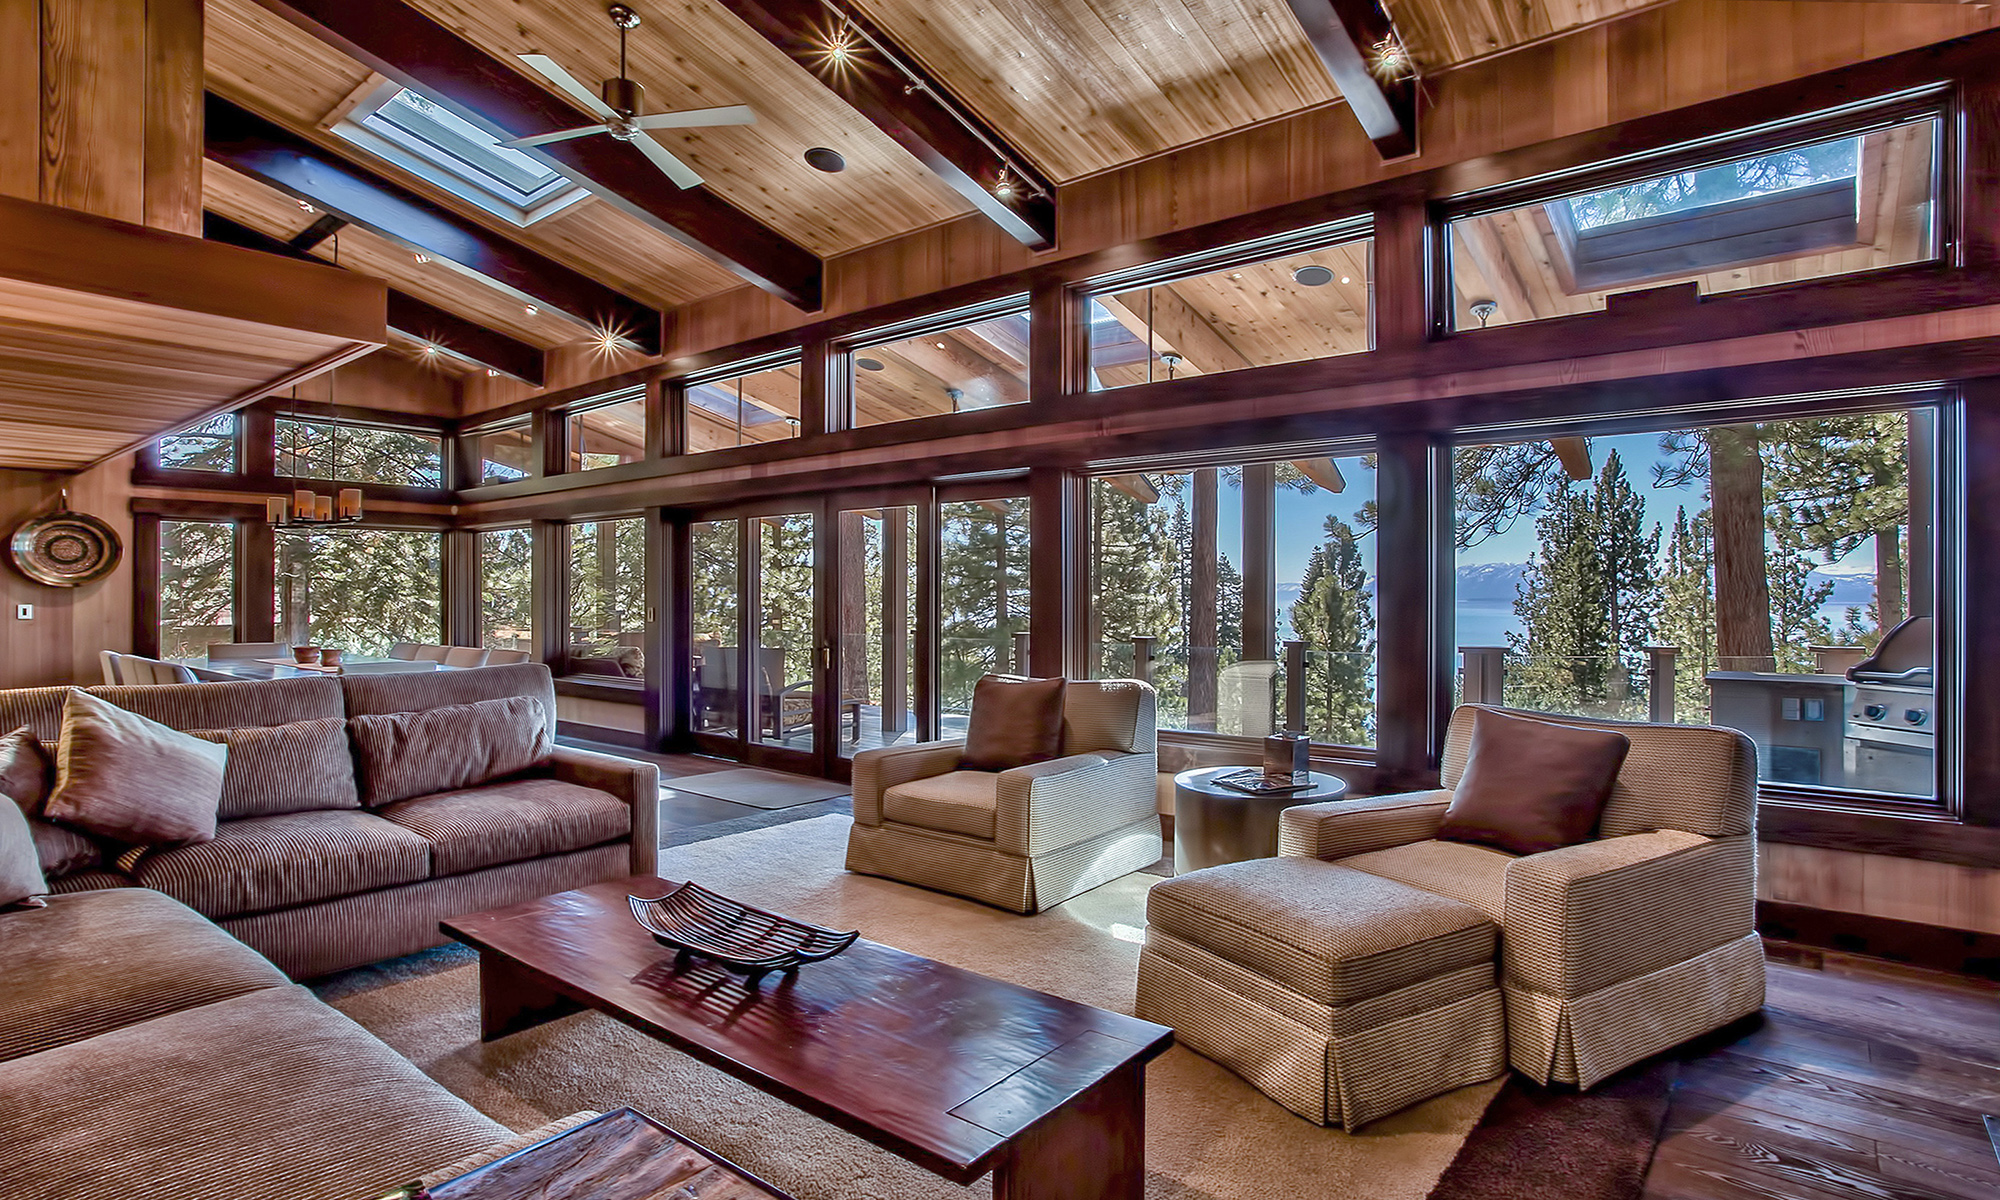 Single Family Home for Sale at 51 Tahoma Drive Tahoe City, California 96145 United States